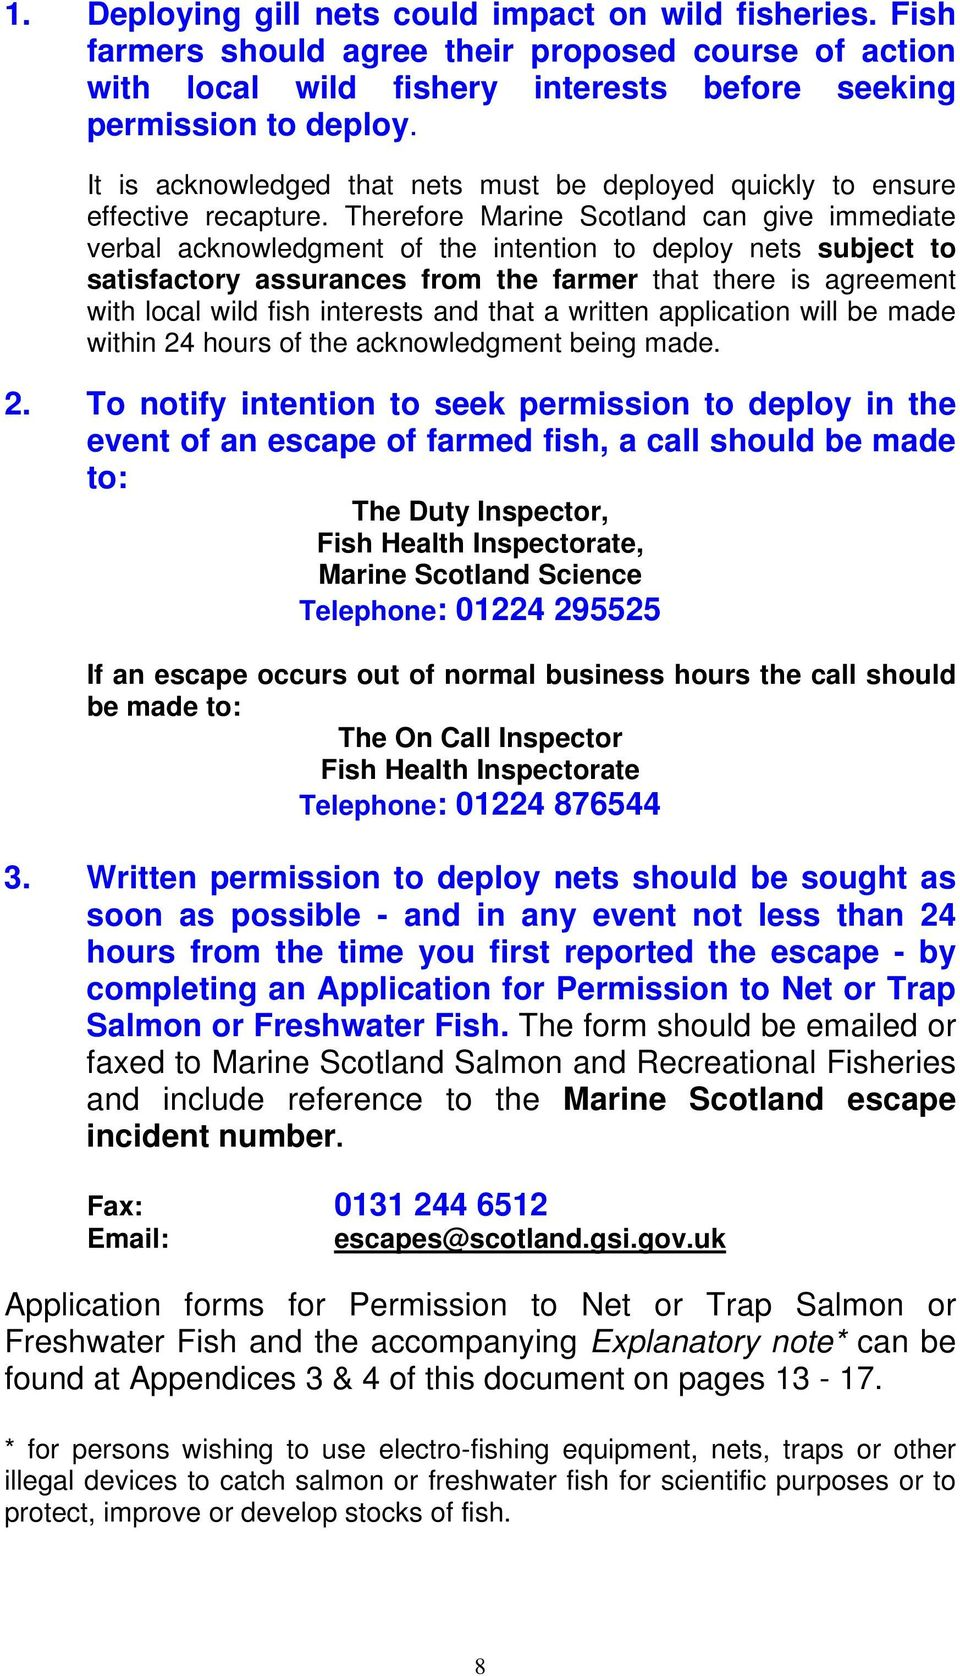 Therefore Marine Scotland can give immediate verbal acknowledgment of the intention to deploy nets subject to satisfactory assurances from the farmer that there is agreement with local wild fish